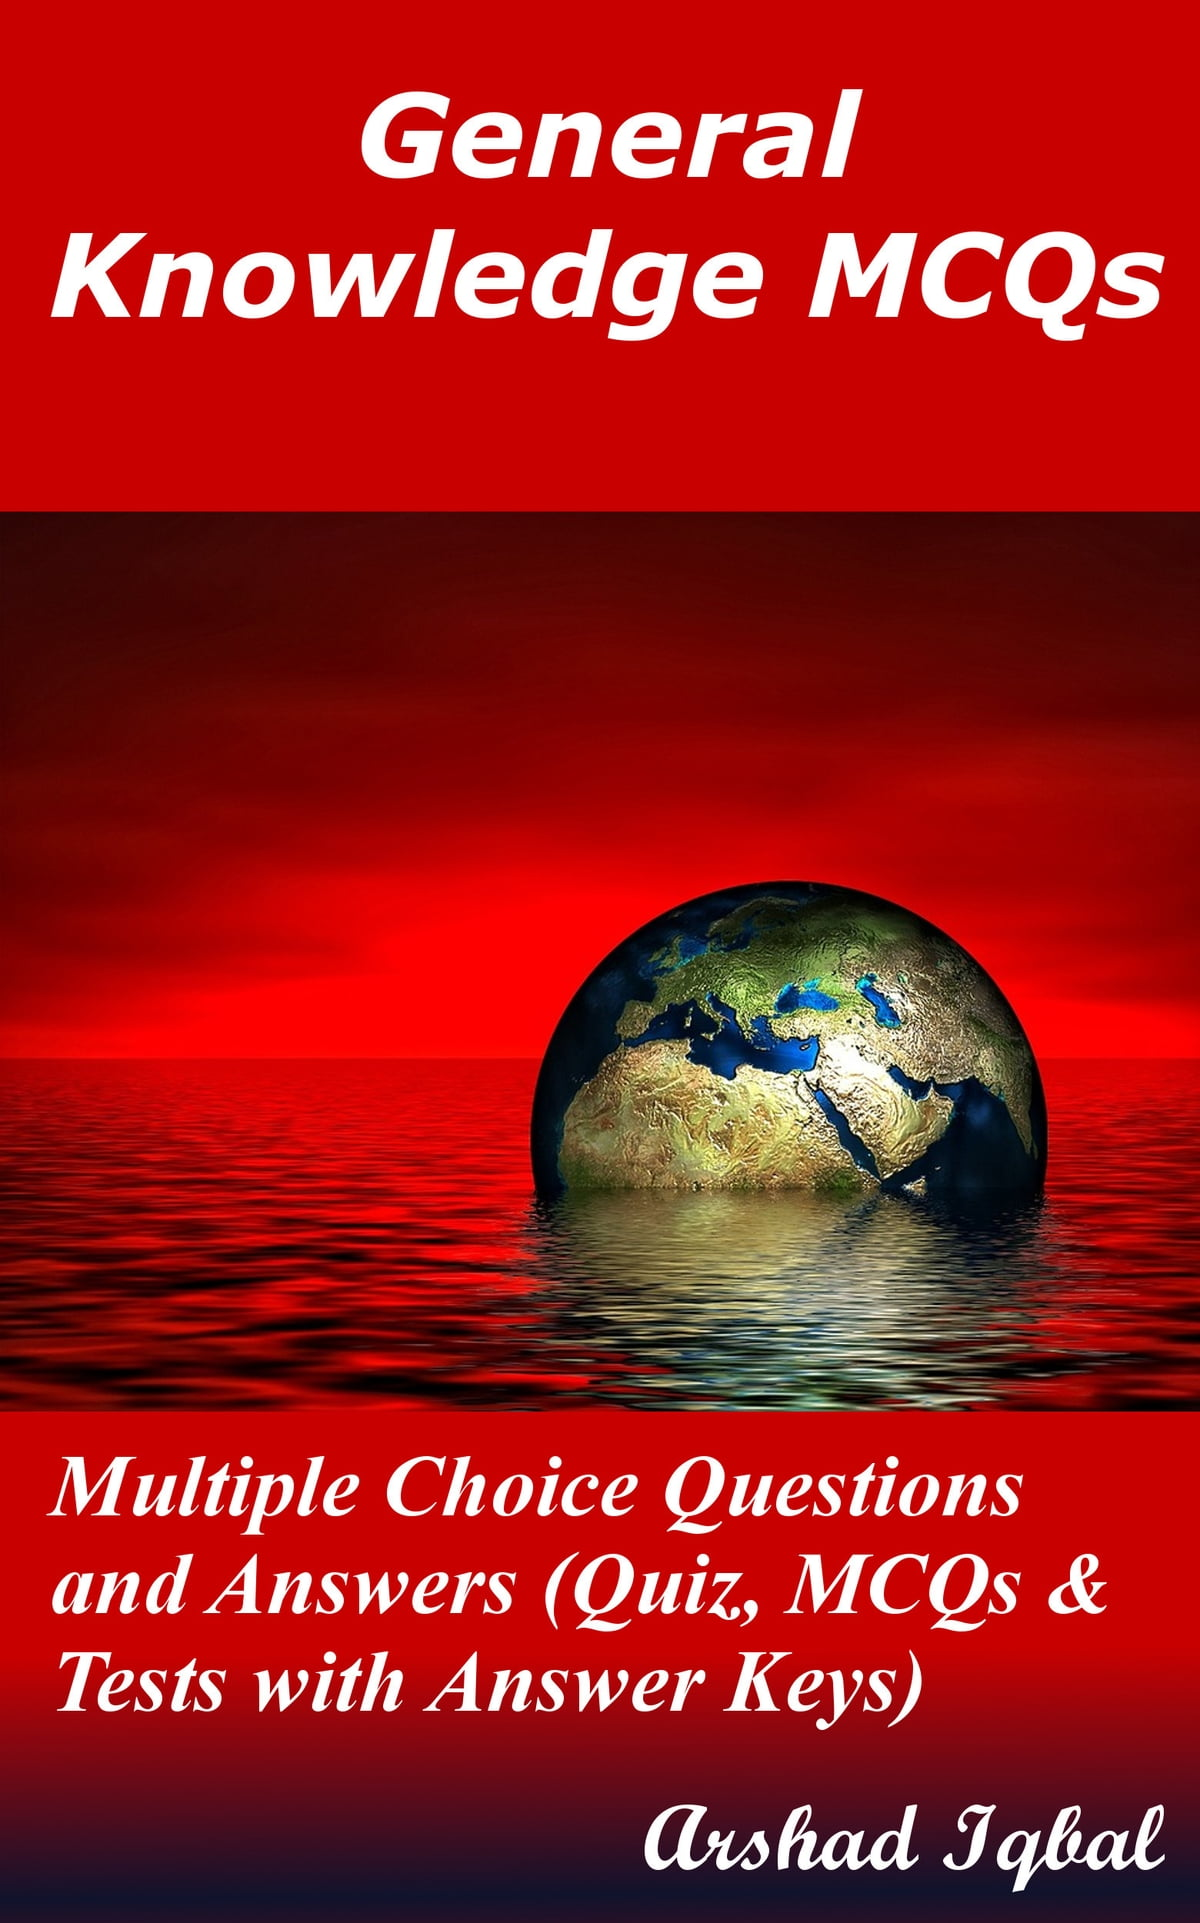 General Knowledge Mcqs Multiple Choice Questions And Answers Quiz Electronic Circuit Design Tests With Answer Keys Ebook Von Arshad Iqbal 9781311237071 Rakuten Kobo